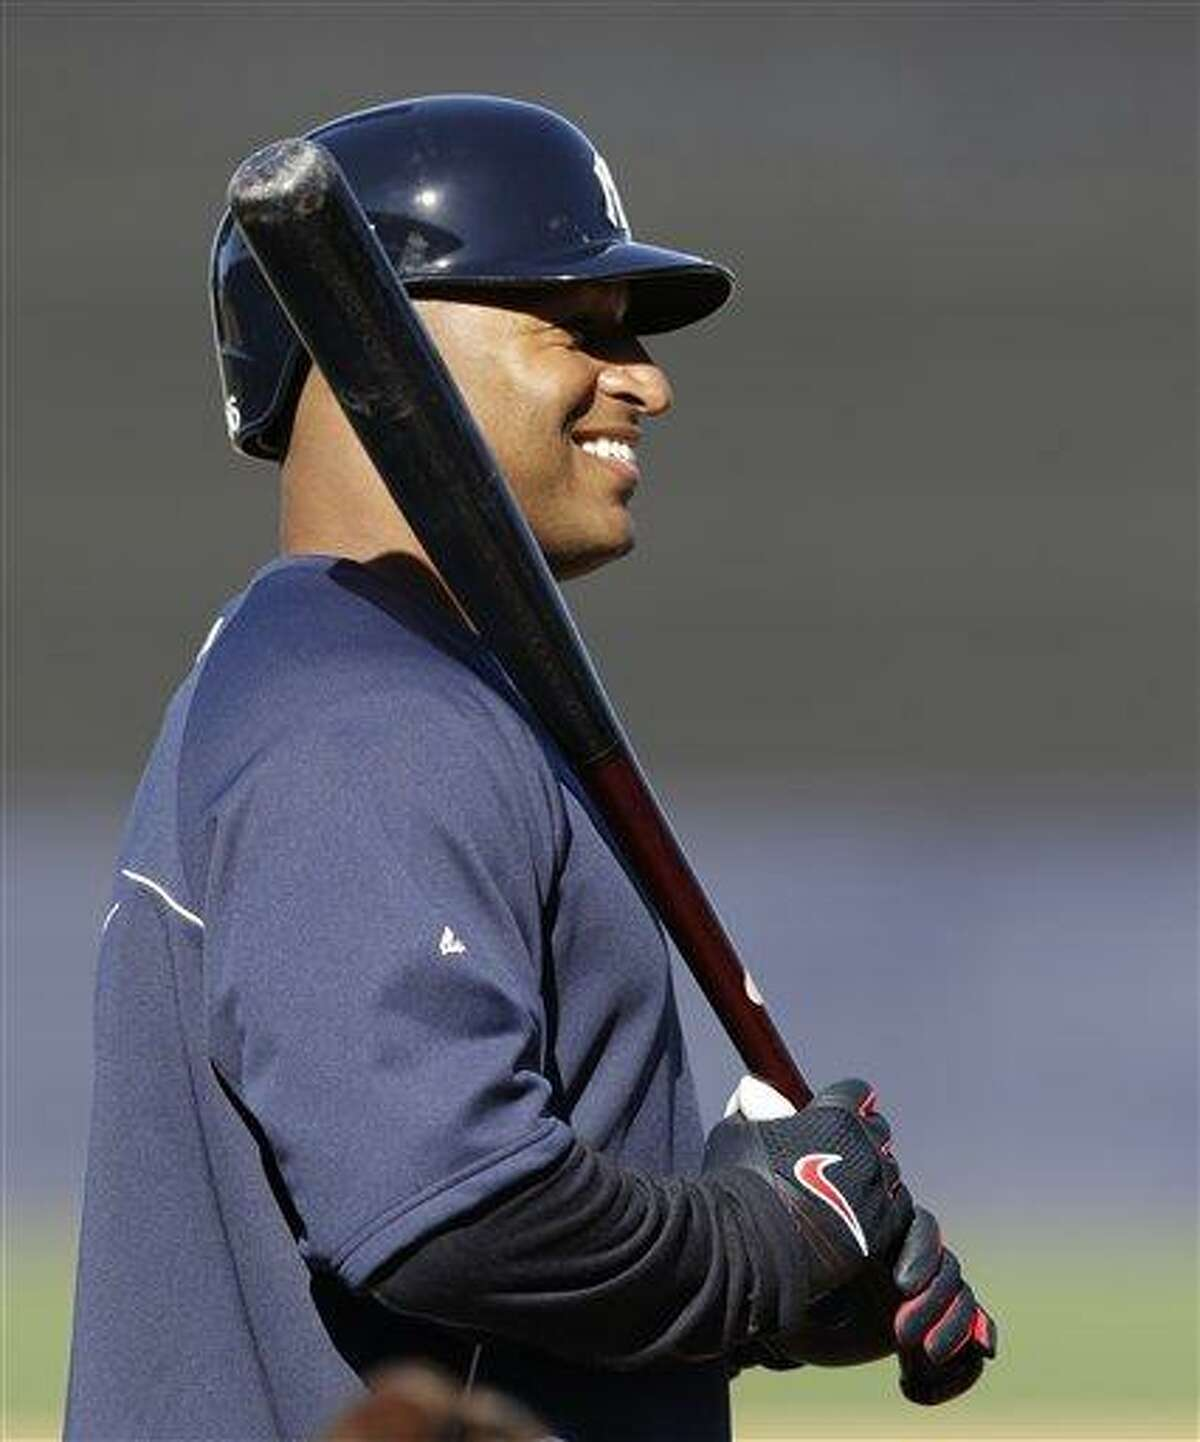 New York Yankees Vernon Wells holds a bat while waiting his turn in the cage after signing with the Yankees before a spring training baseball game at Steinbrenner Field in Tampa, Fla., Tuesday, March 26, 2013. Wells is in the lineup for Tuesday night's game against the Houston Astros. (AP Photo/Kathy Willens)